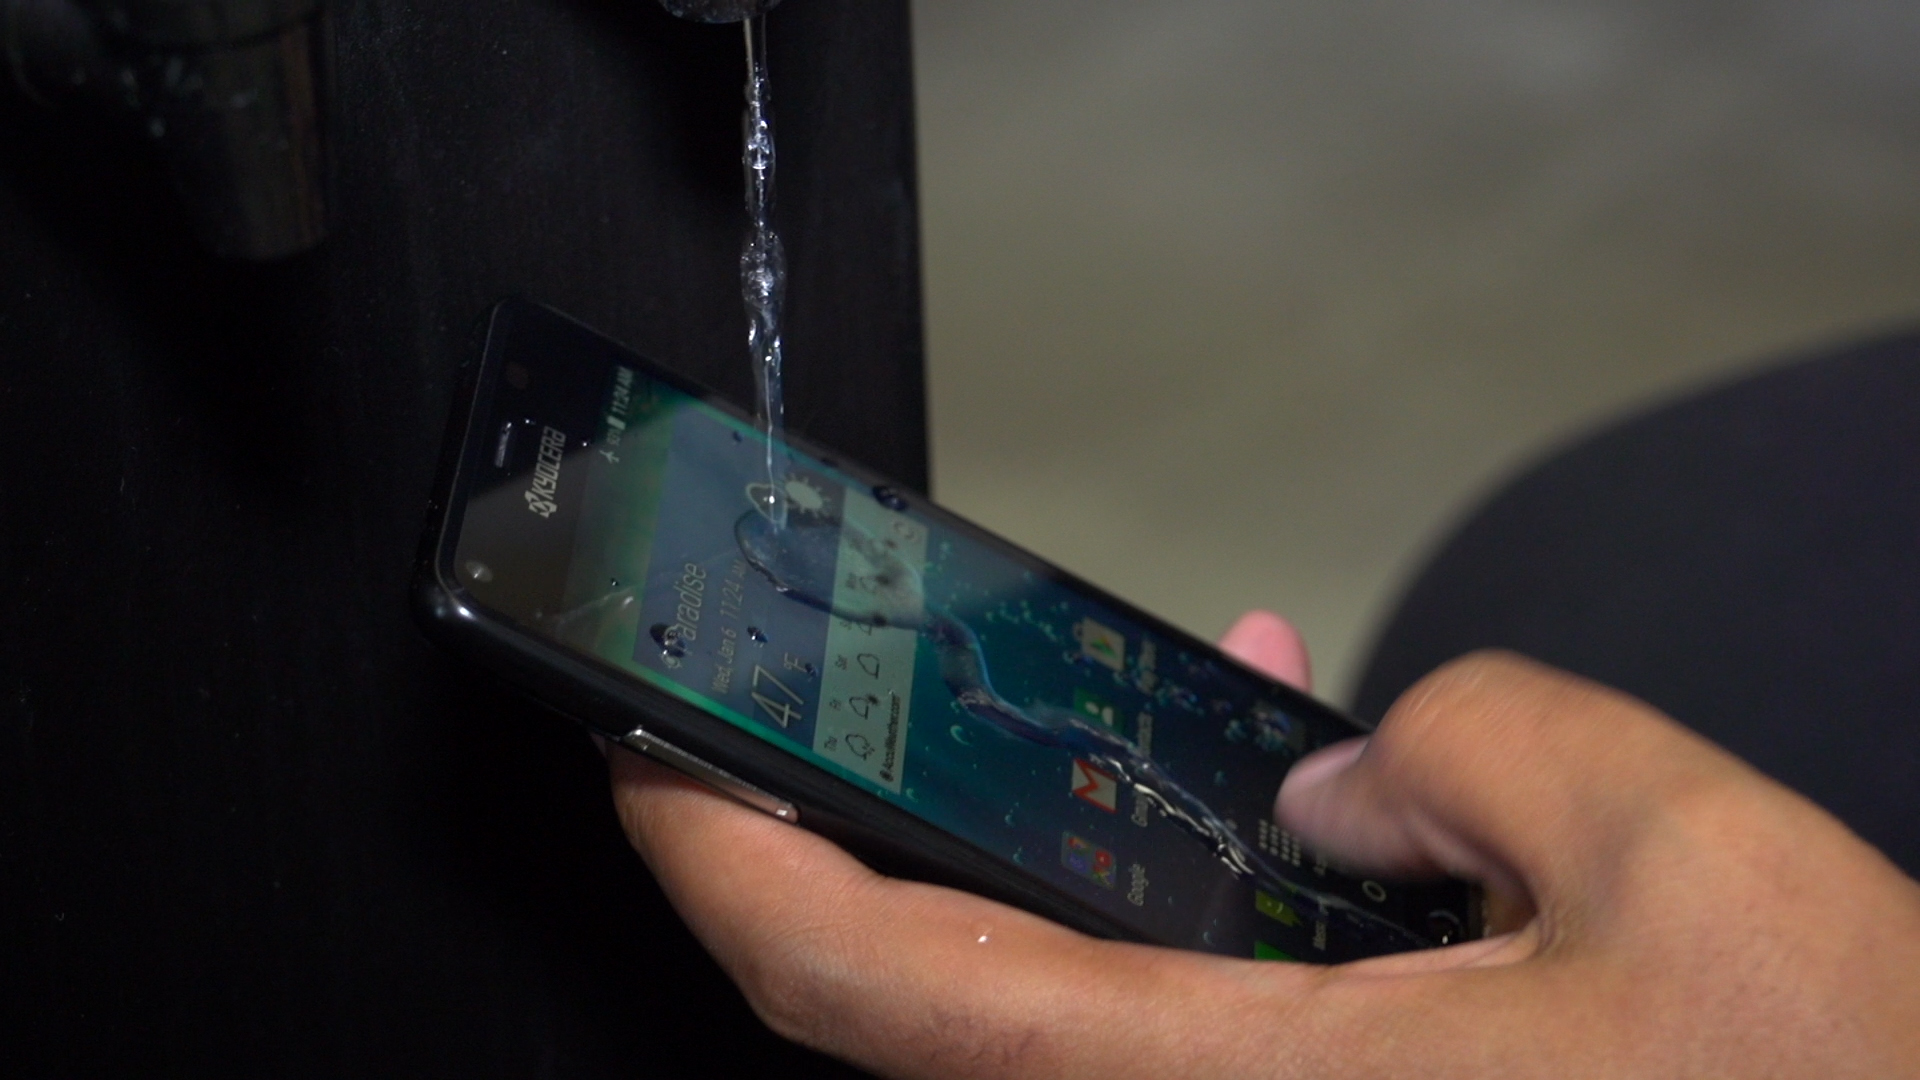 Video: Wet hands are no problem with the Kyocera Hydro View